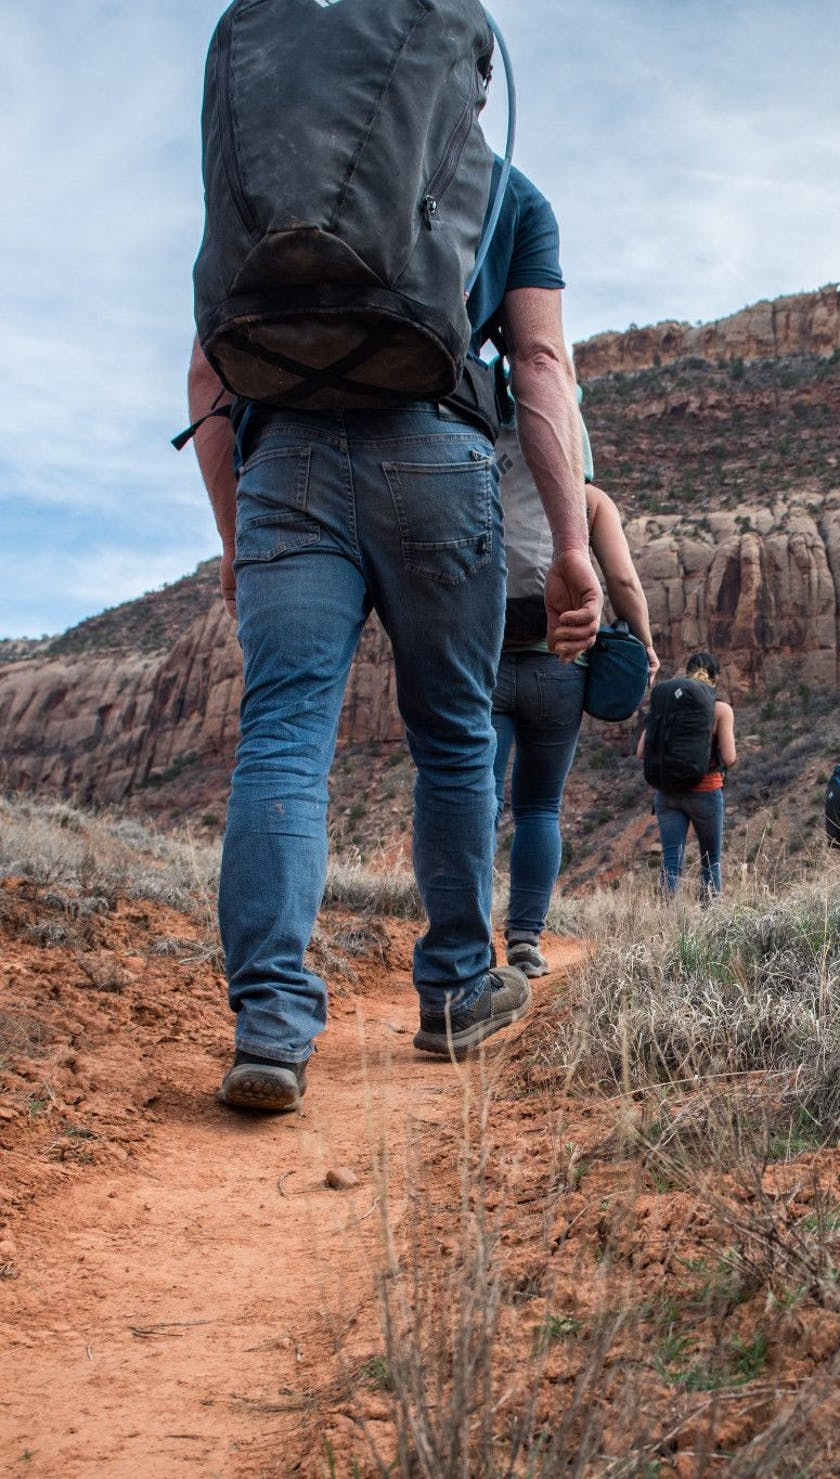 A group of people wearing Forged Denim pants approach a crag in the desert